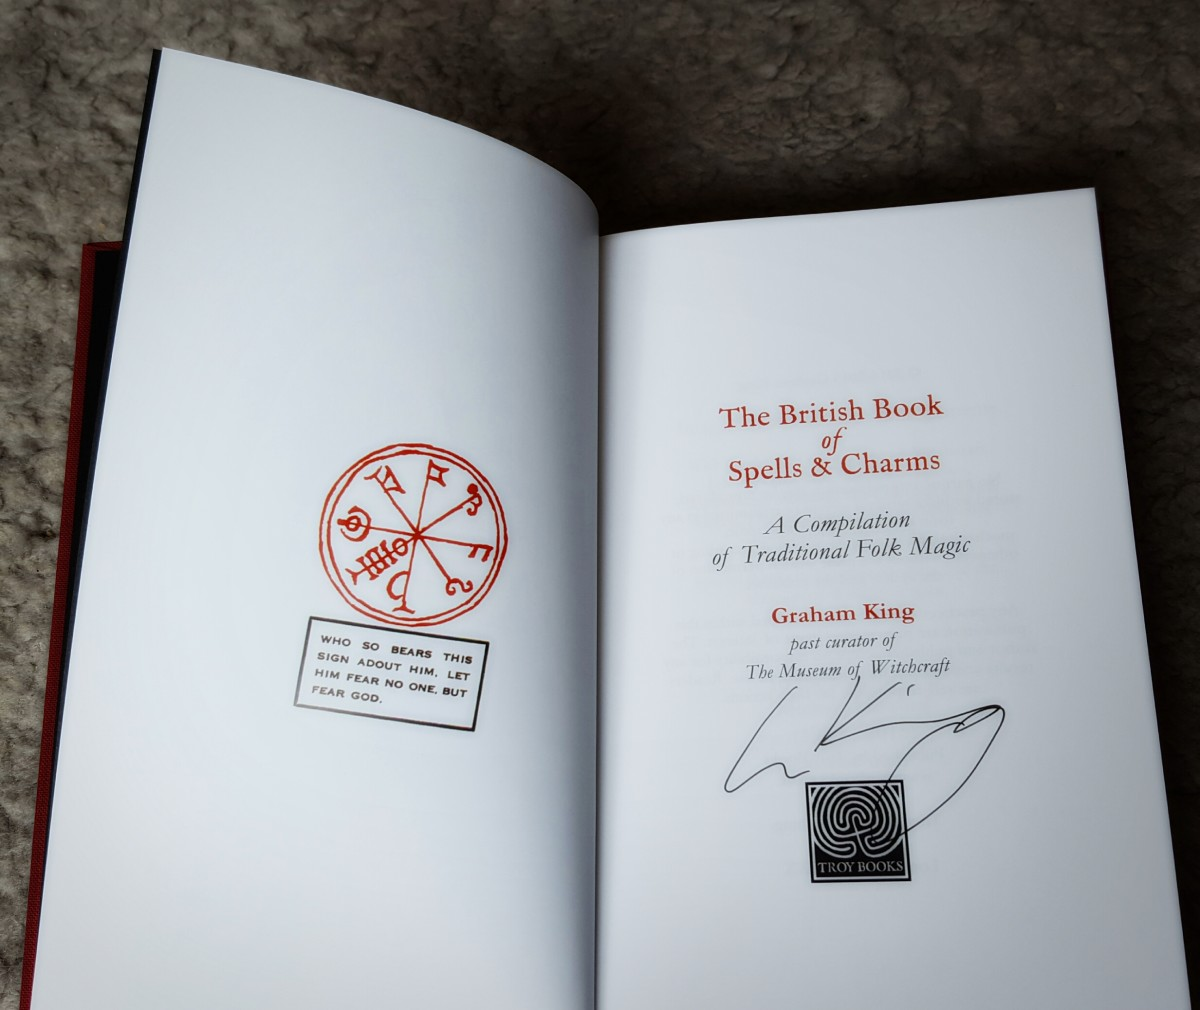 Inside of a Special Edition copy, from Troy Books.